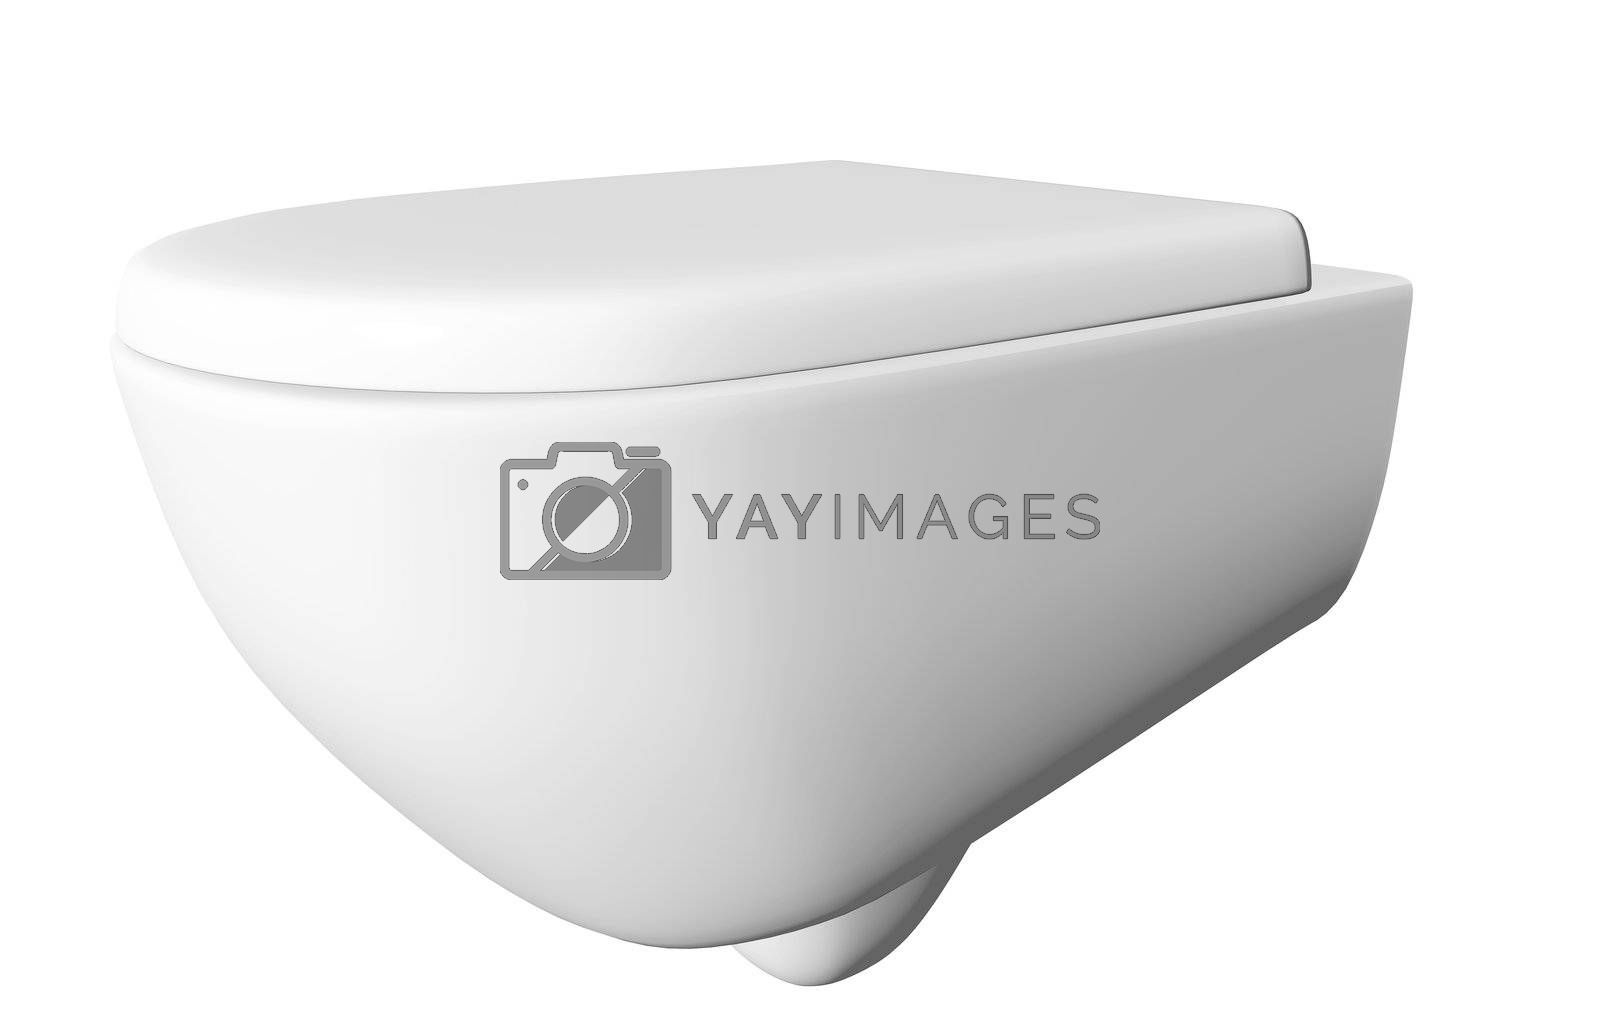 Modern white ceramic and acrylic toilet bowl and lid, isolated against a white background. 3D illustration